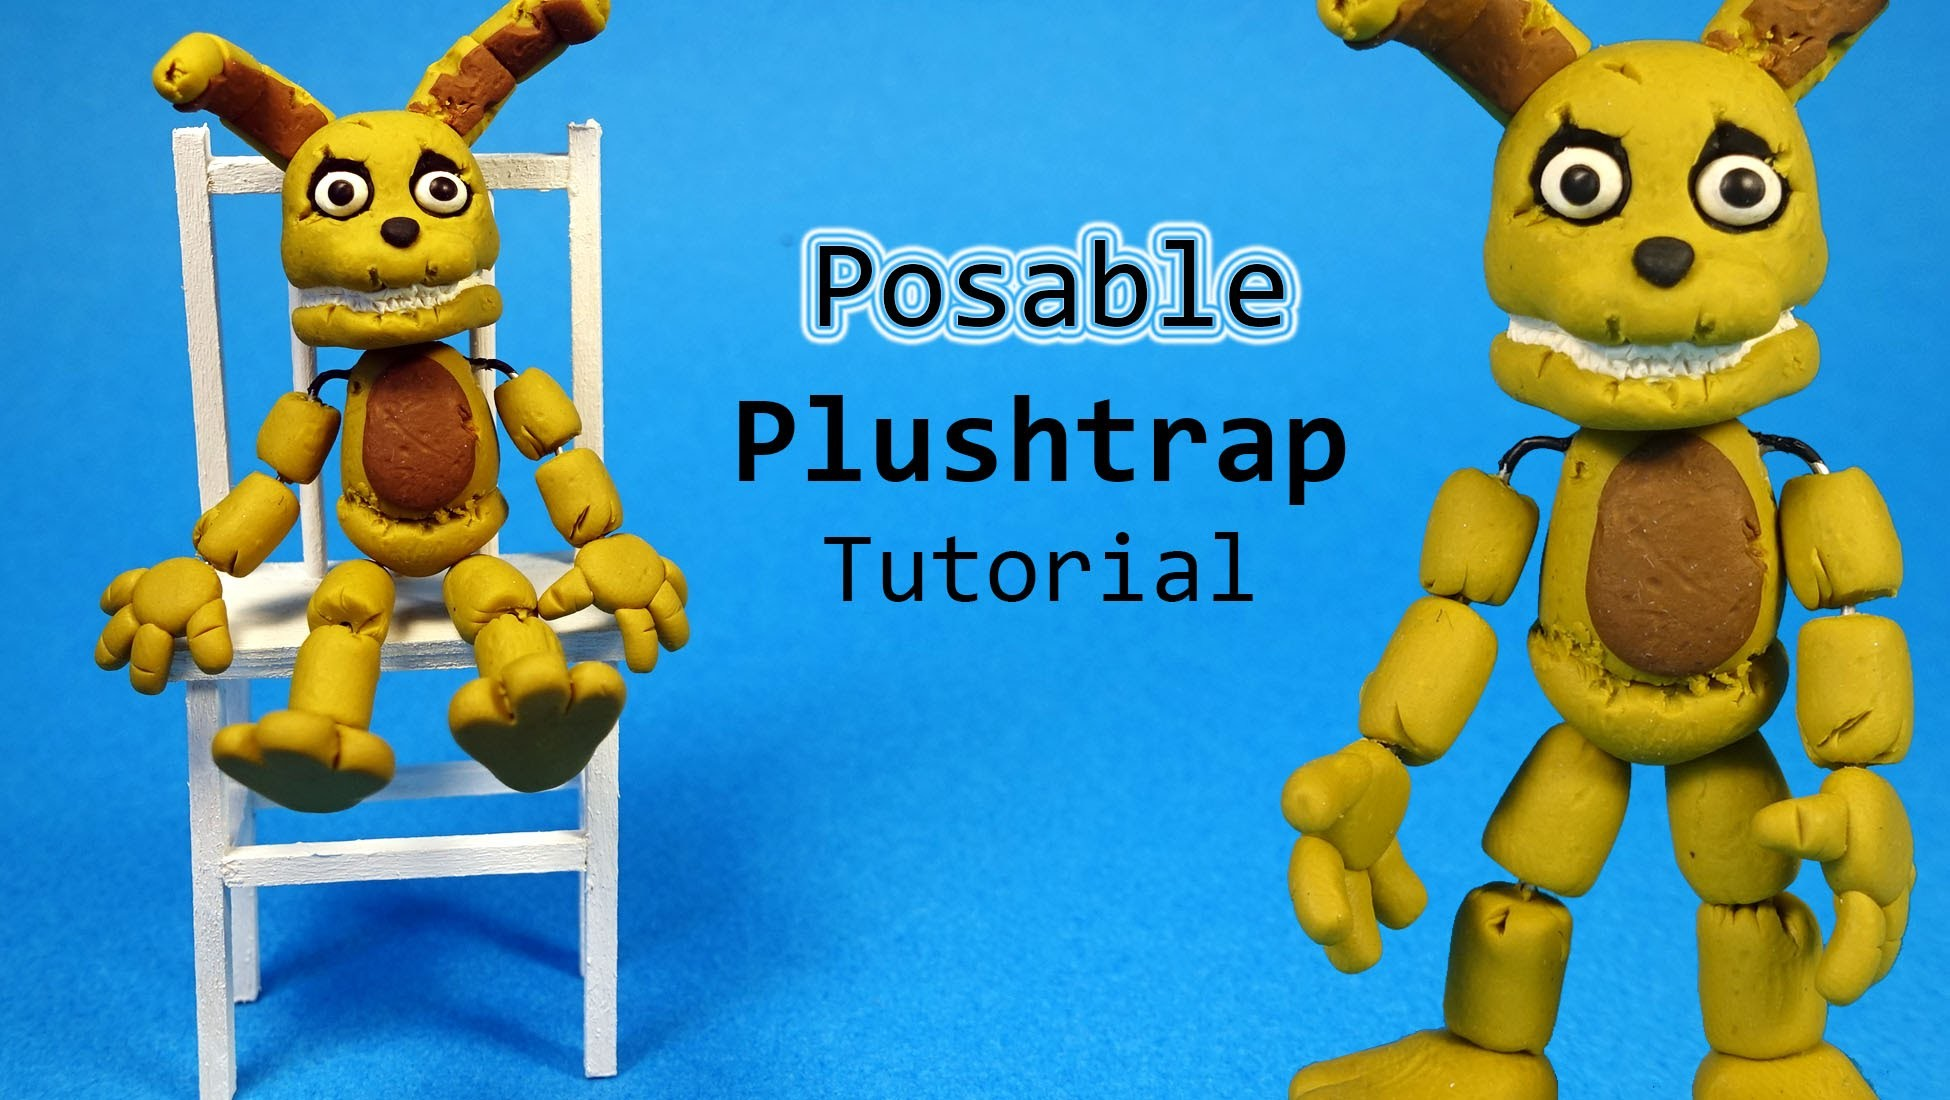 Five Nights At Freddy's 4 Plushtrap Posable Figure Polymer Clay Tutorial